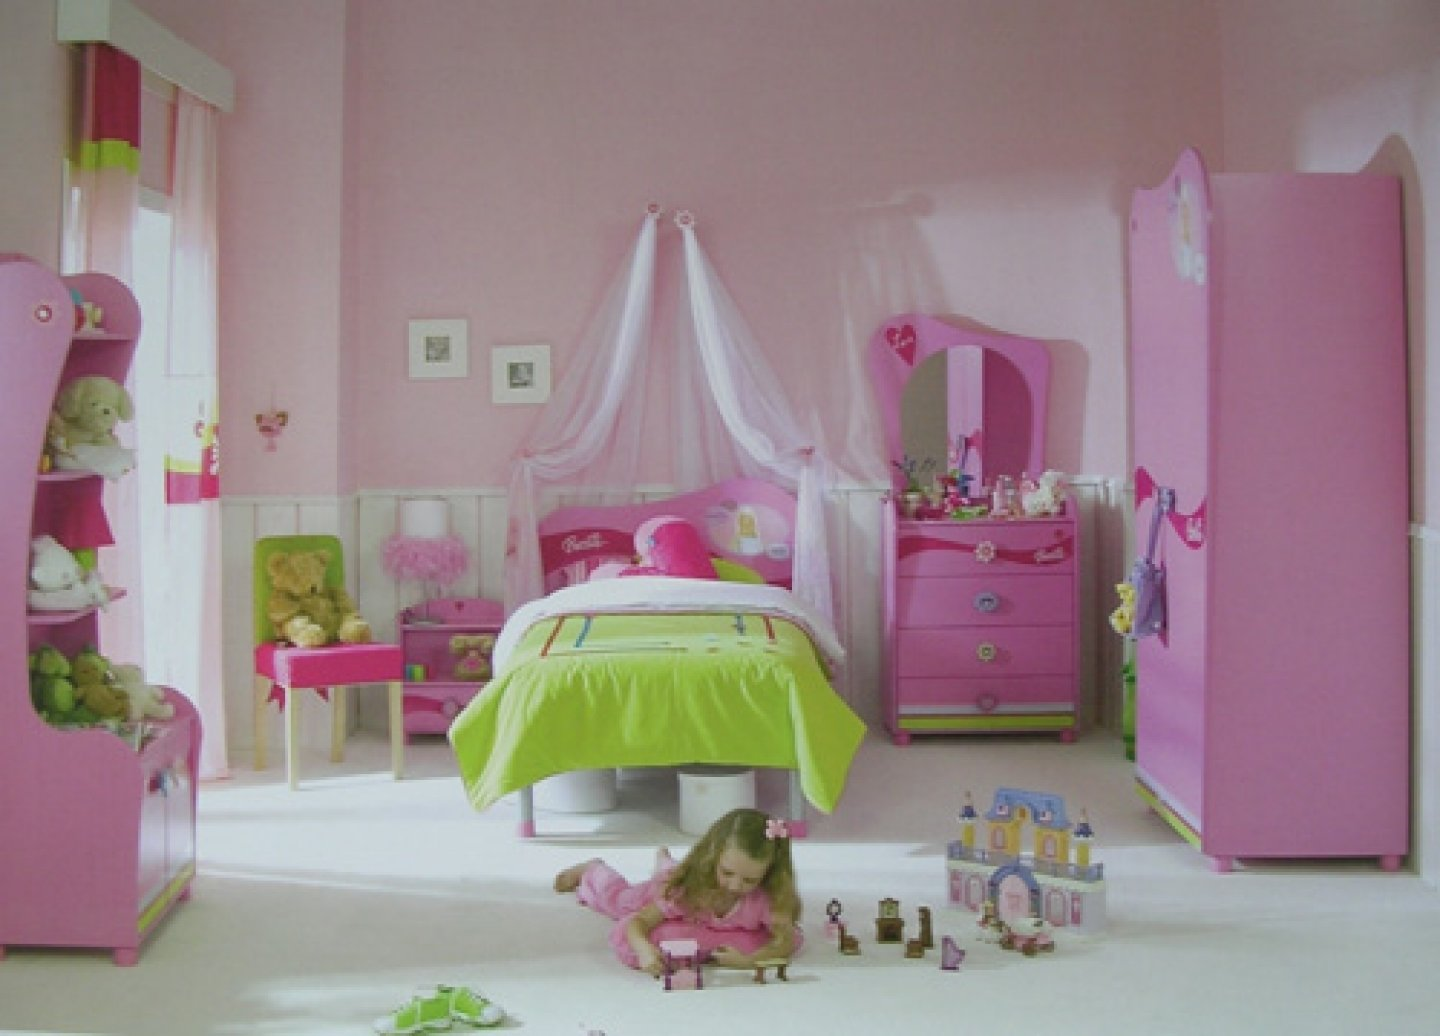 10 Perfect Little Girls Room Decor Ideas bright idea girl room decor ideas brilliant design girls room